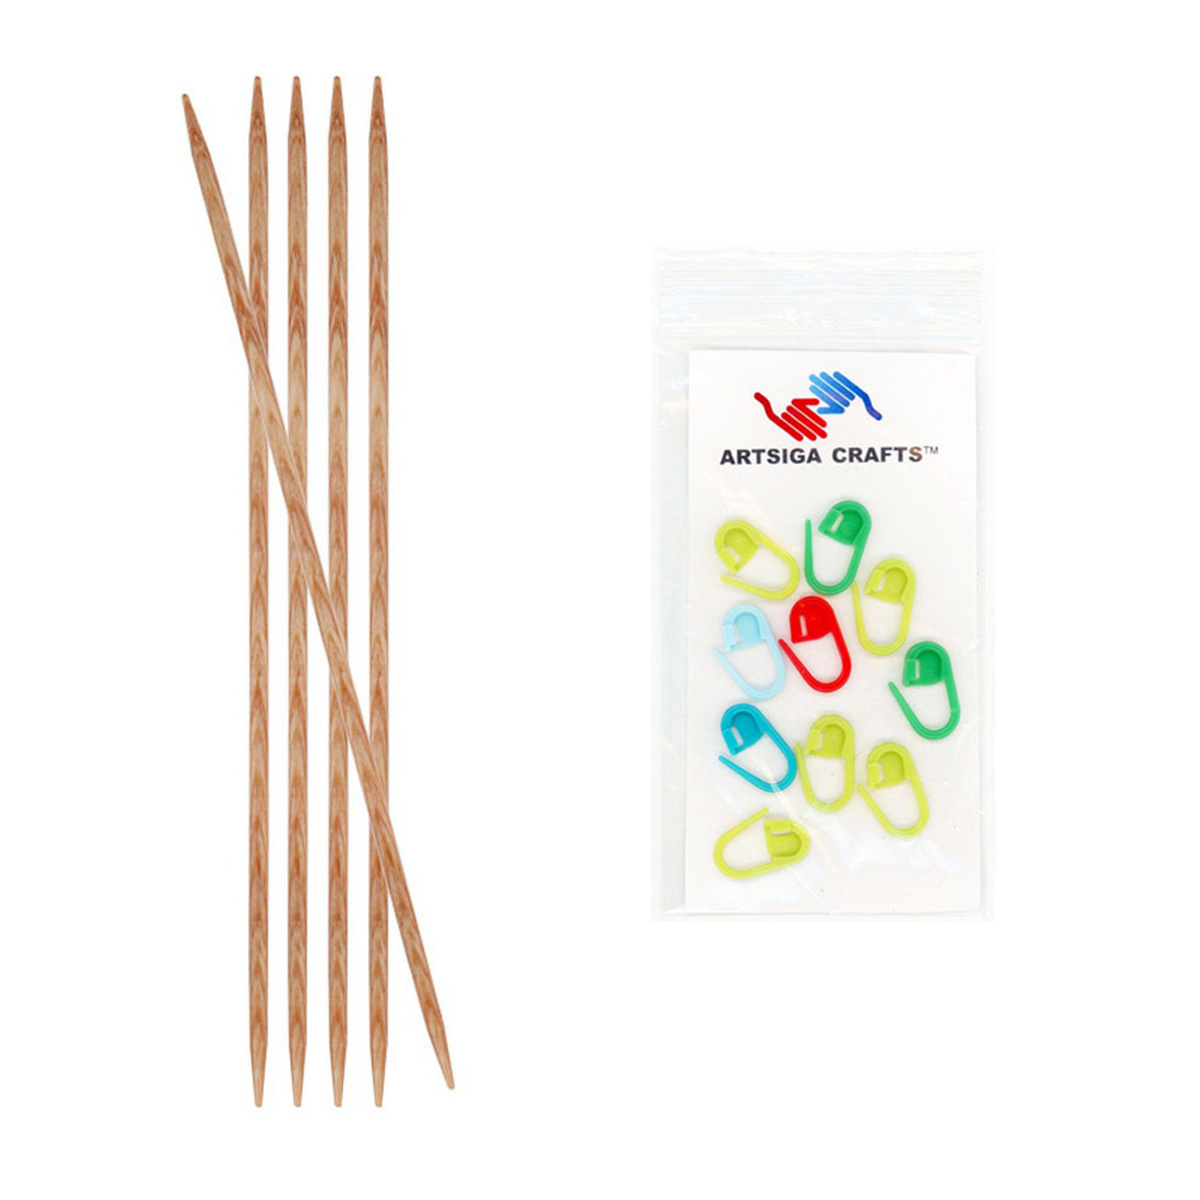 Knitter's Pride Naturalz Double Pointed 5-inch (12.5cm) Knitting Needles (Set of 5) Bundle with 10 Artsiga Crafts Stitch Markers